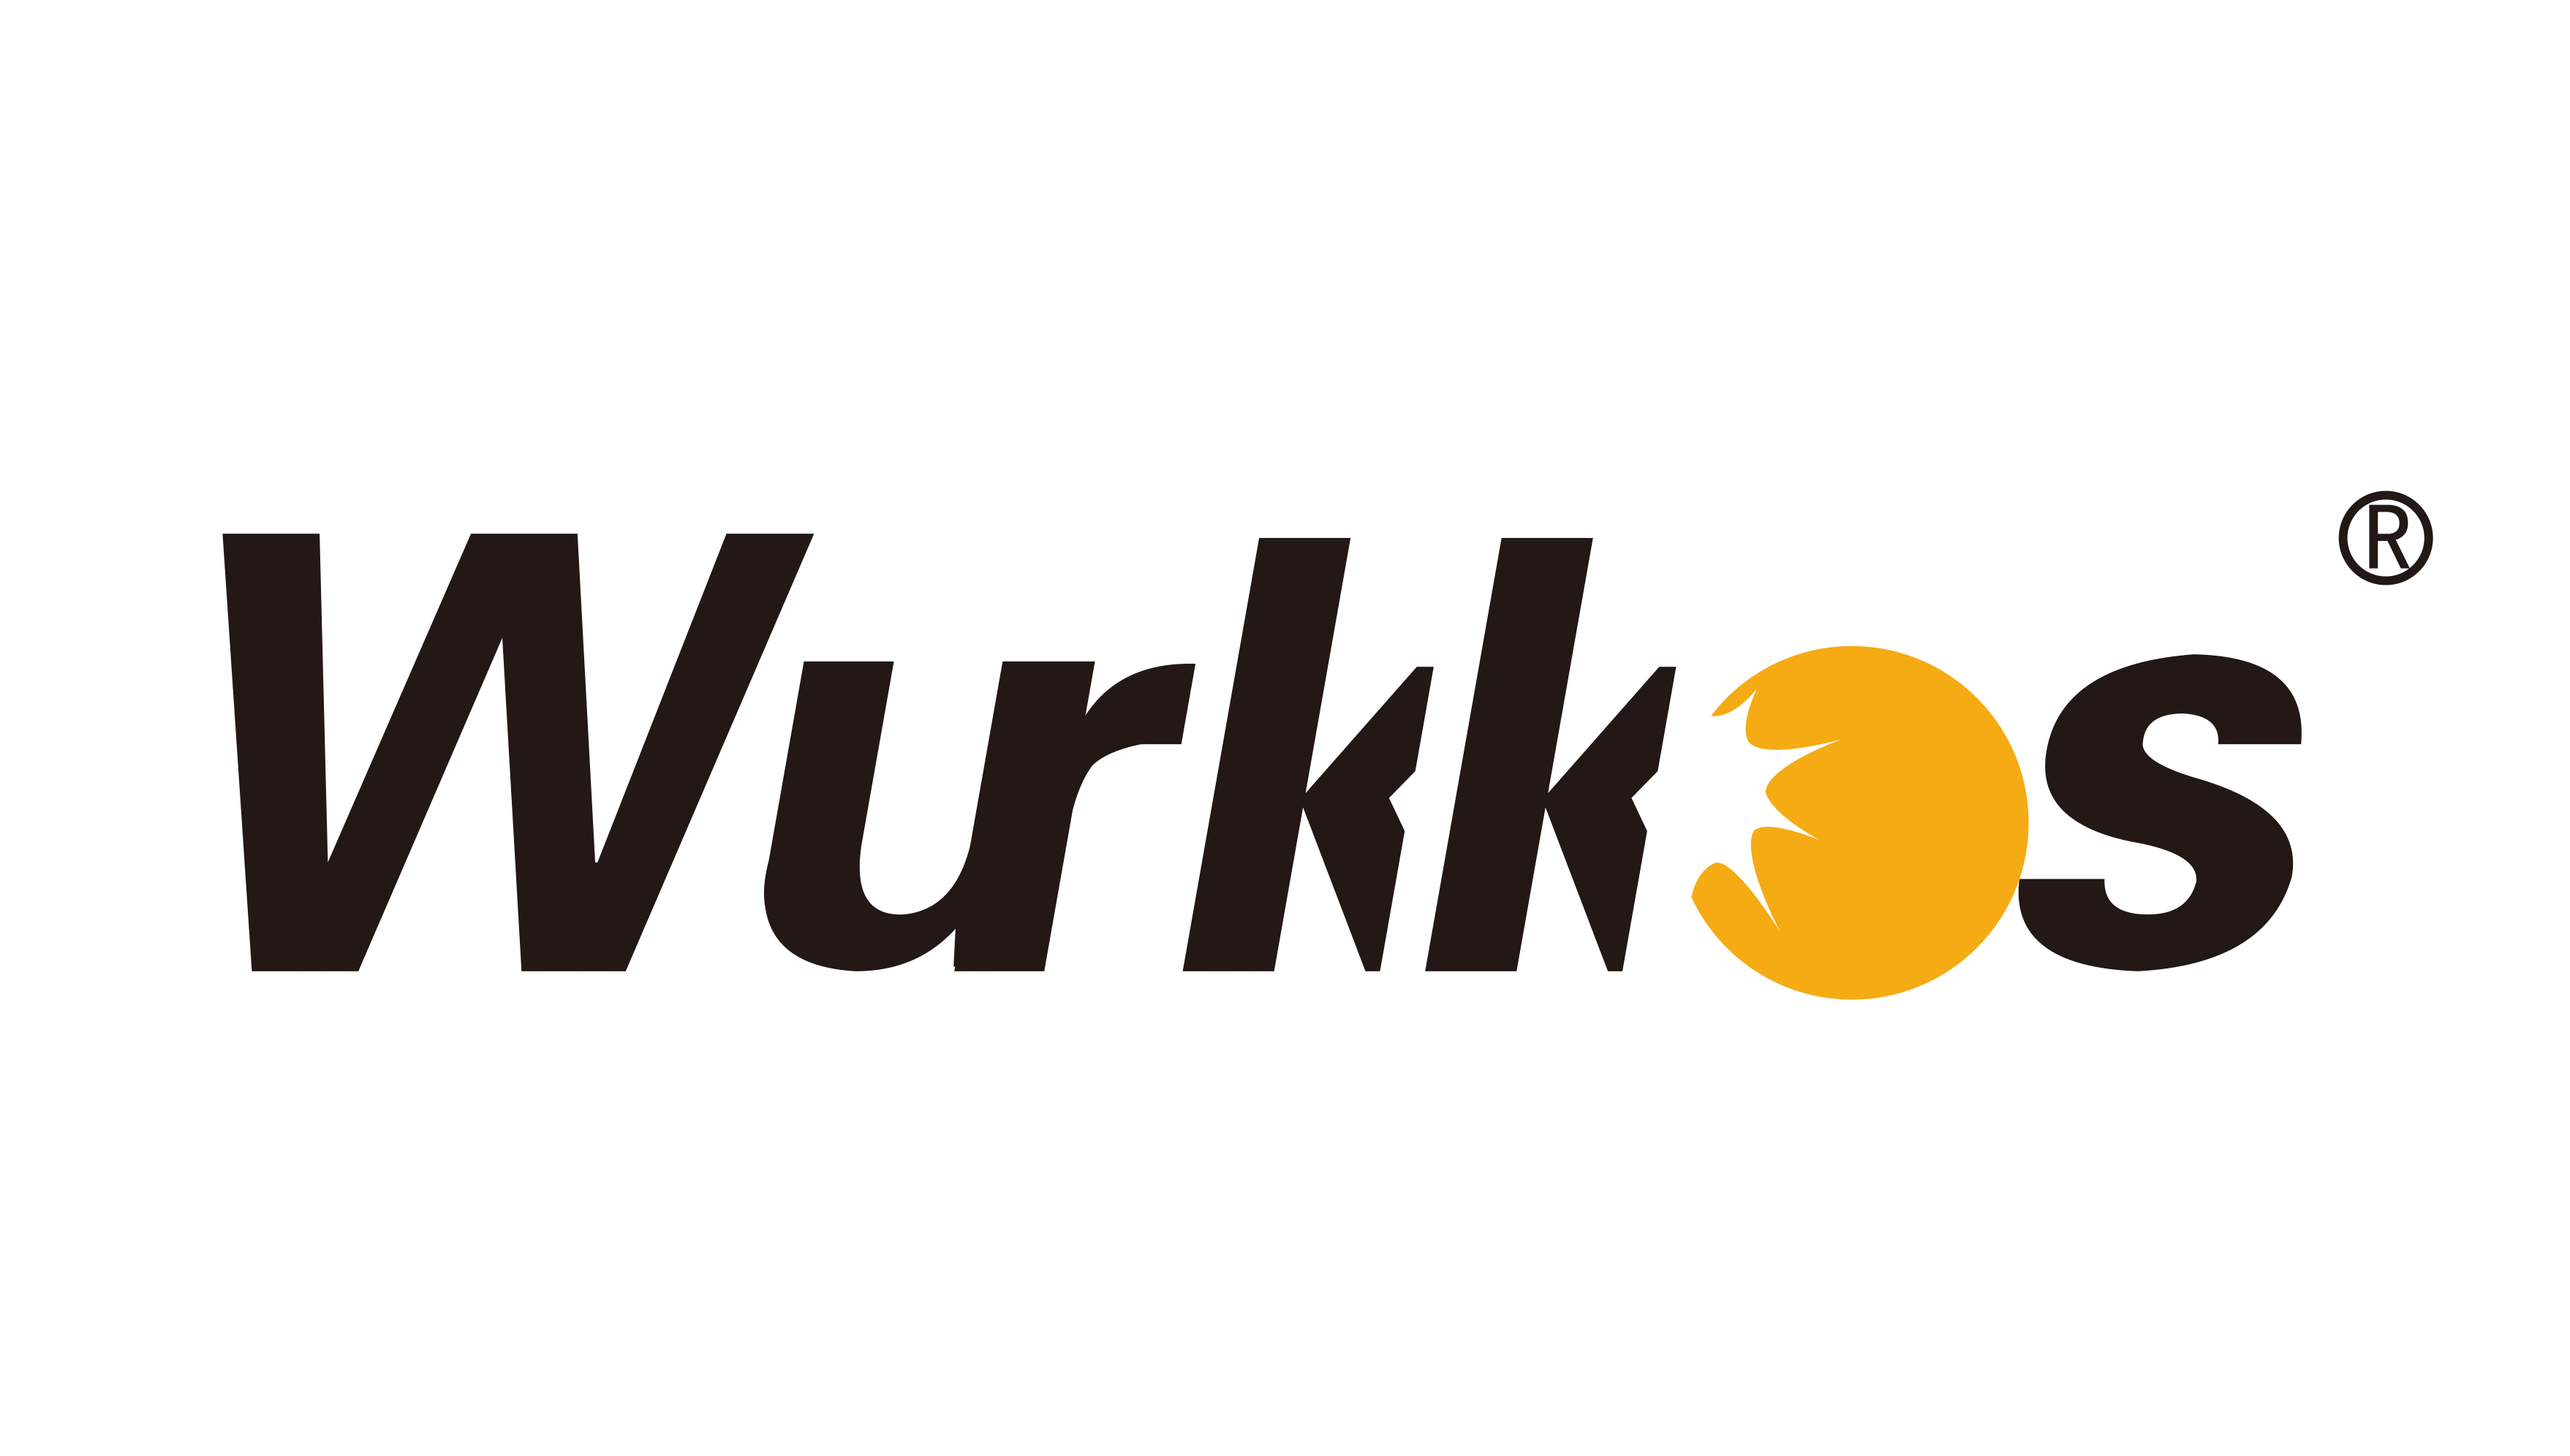 wurkkos official website